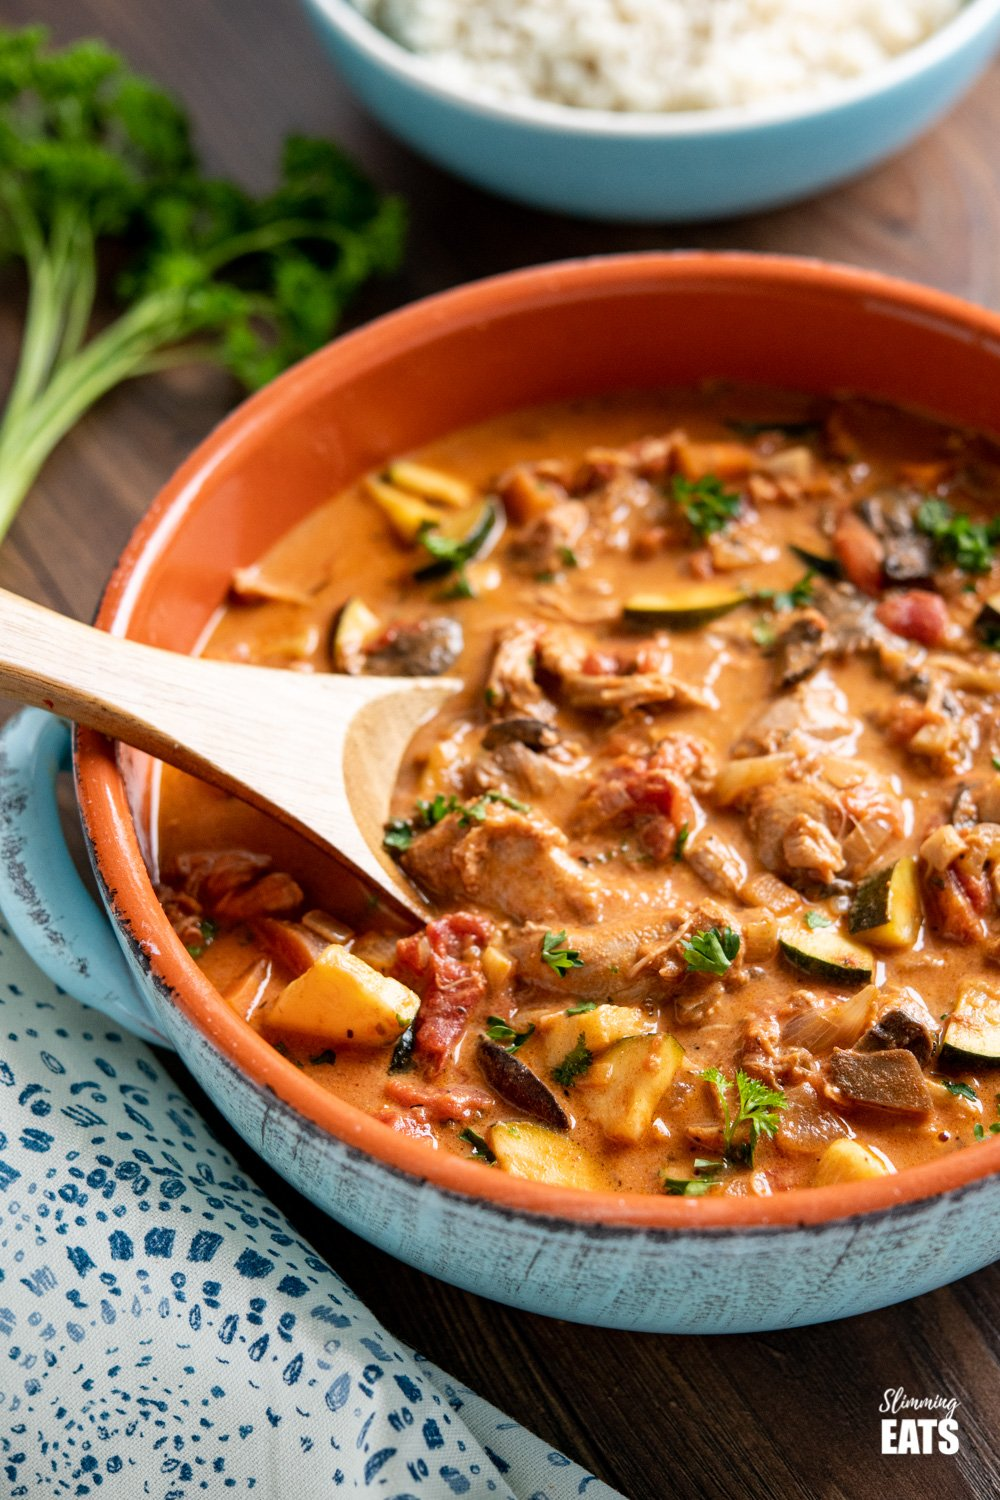 slow cooker creamy tomato and turkey casserole in ceramic blue dish with wooden spoon